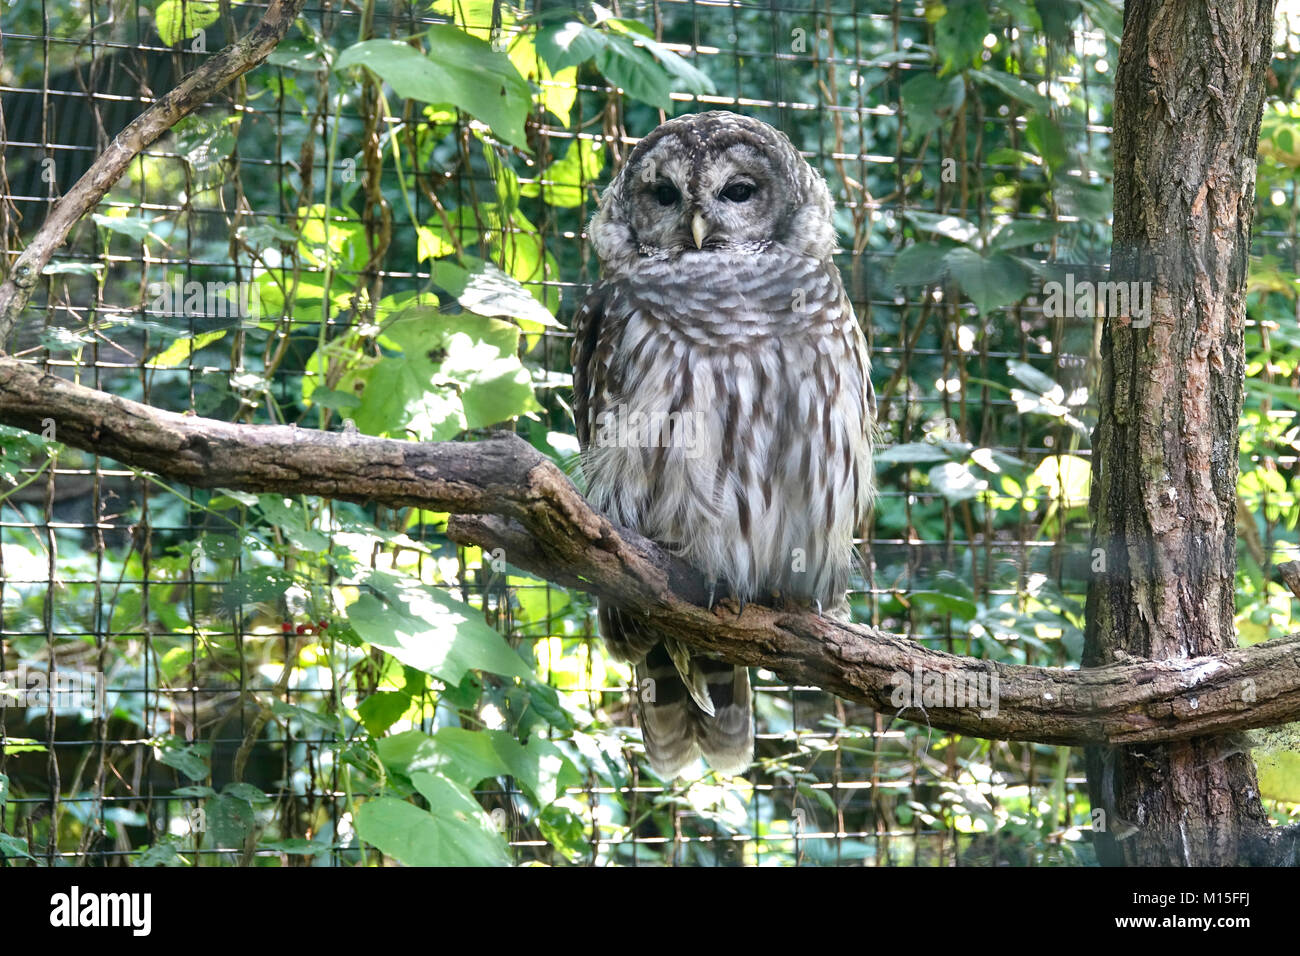 Wise Owl Sitting on Tree Branch Stock Photo